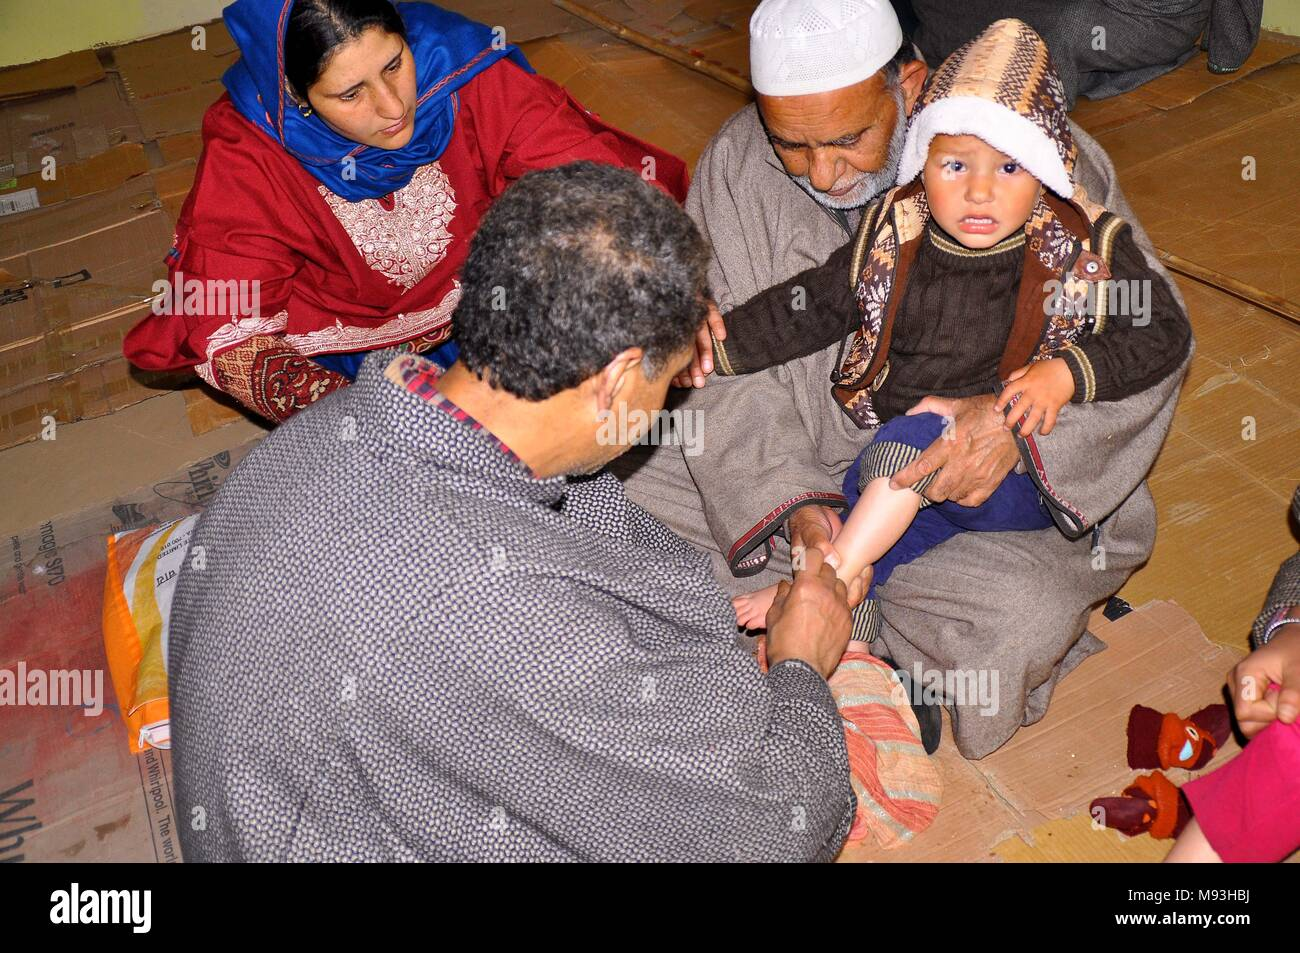 Anantnag, India. 21st Mar, 2018. A Young kashmiri Boy receives leech therapy on 20, March 2018 in Malaknag Anantnag, 48 Kilometer from the the summer capital of Indian administered Kashmir, India. Practitioners of the centuries-old alternative form of treatment use leeches to suck impure blood from the affected patient to treat various ailments. Credit: Muneeb Ul Islam/Pacific Press/Alamy Live News - Stock Image